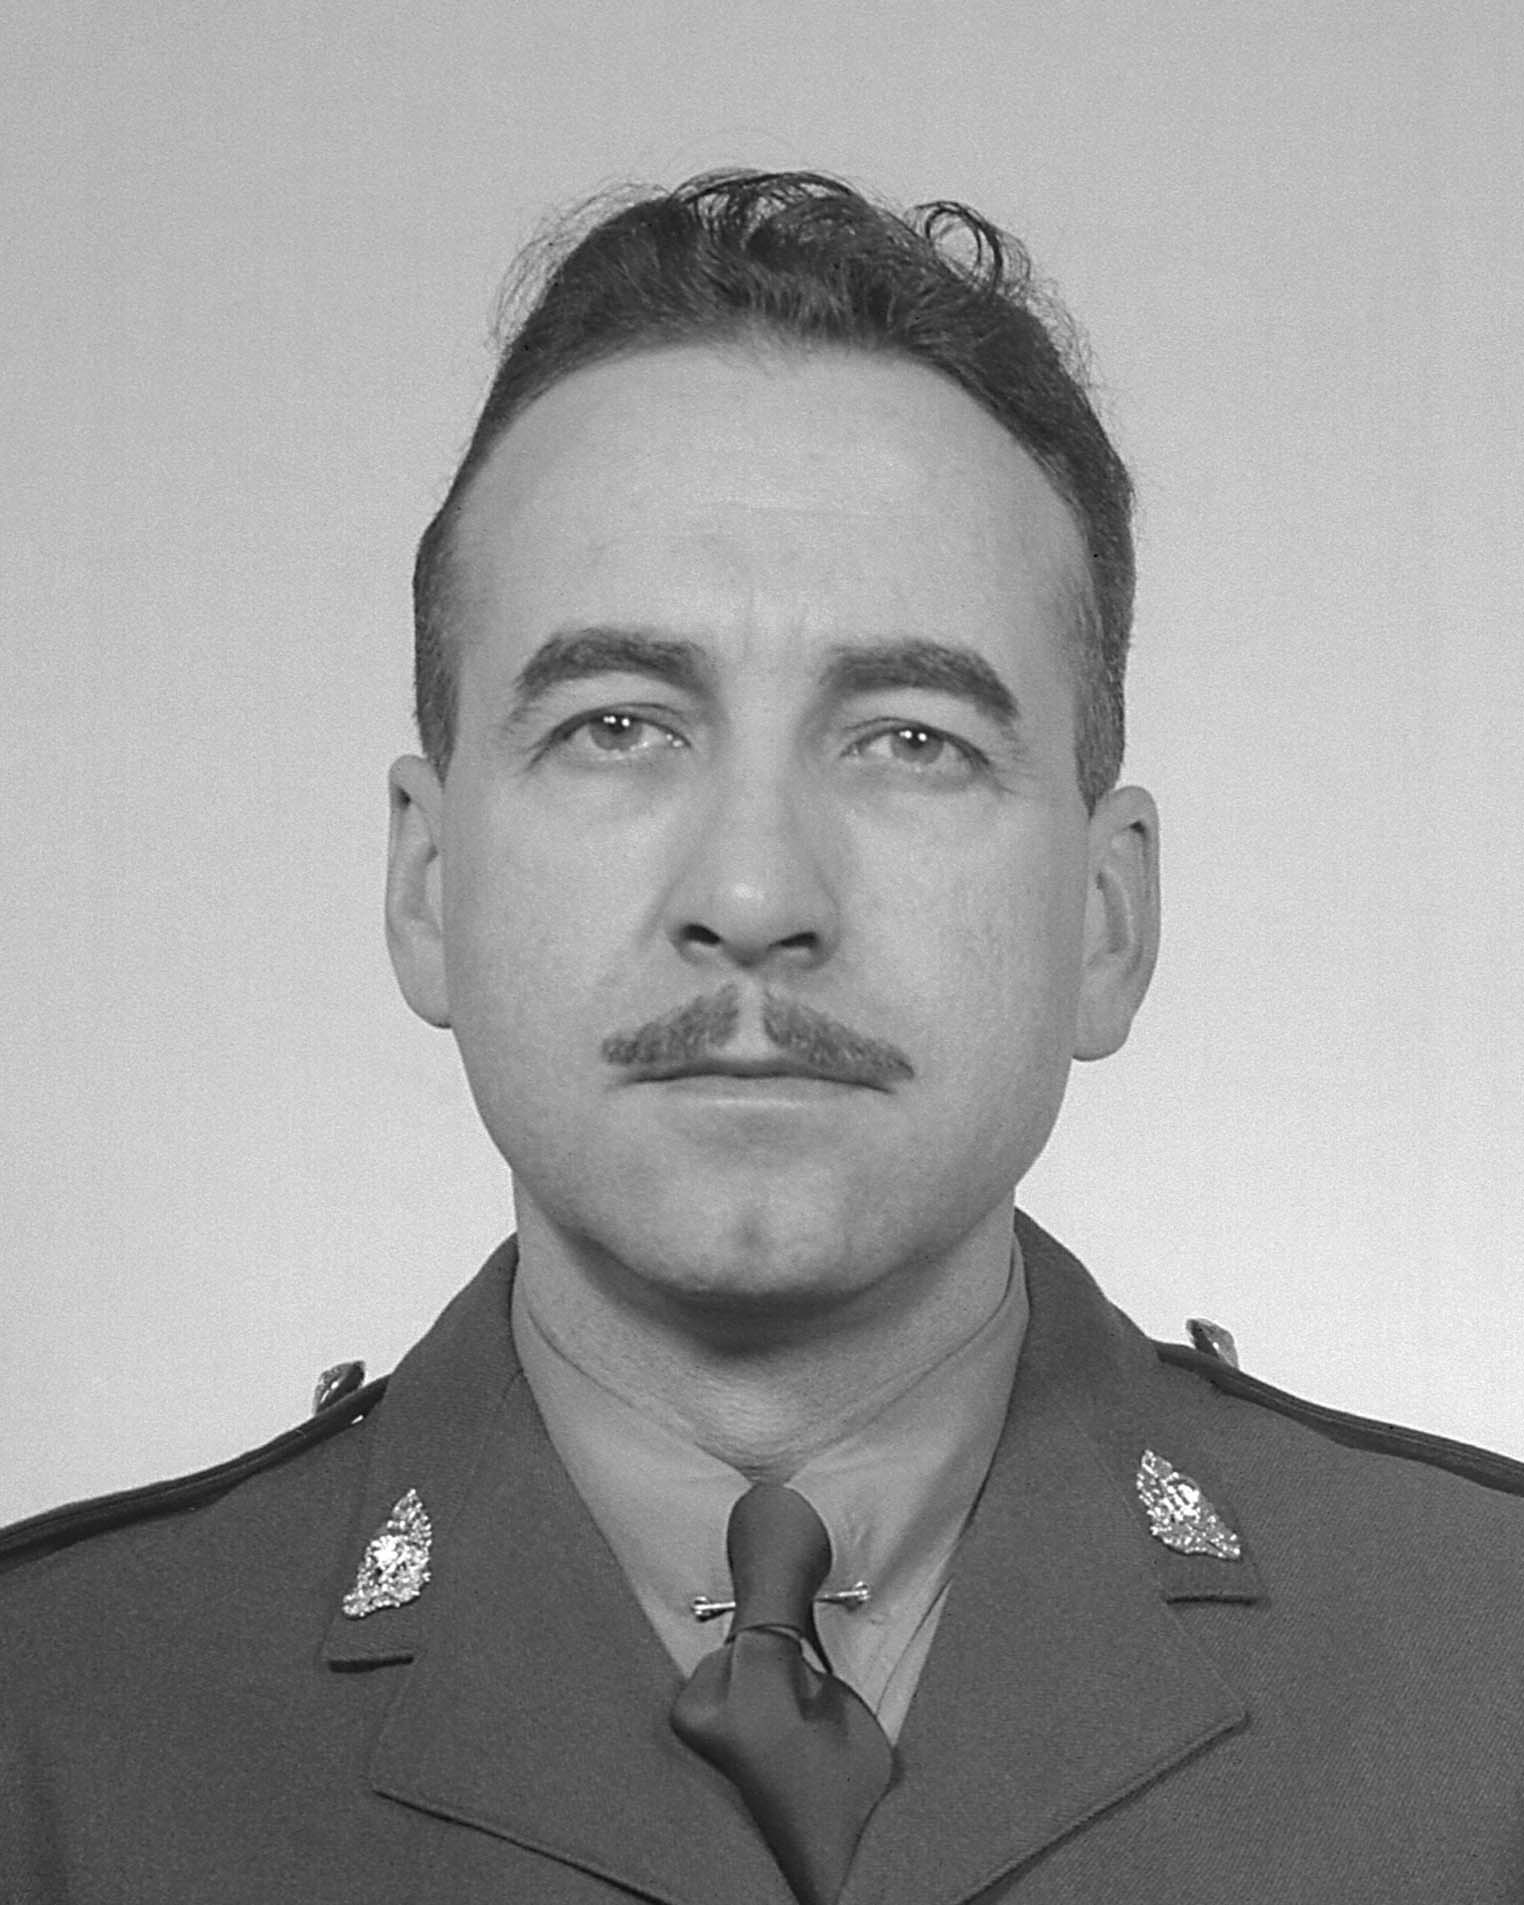 Inspector David James McCombe– © Her Majesty the Queen in Right of Canada as represented by the Royal Canadian Mounted Police